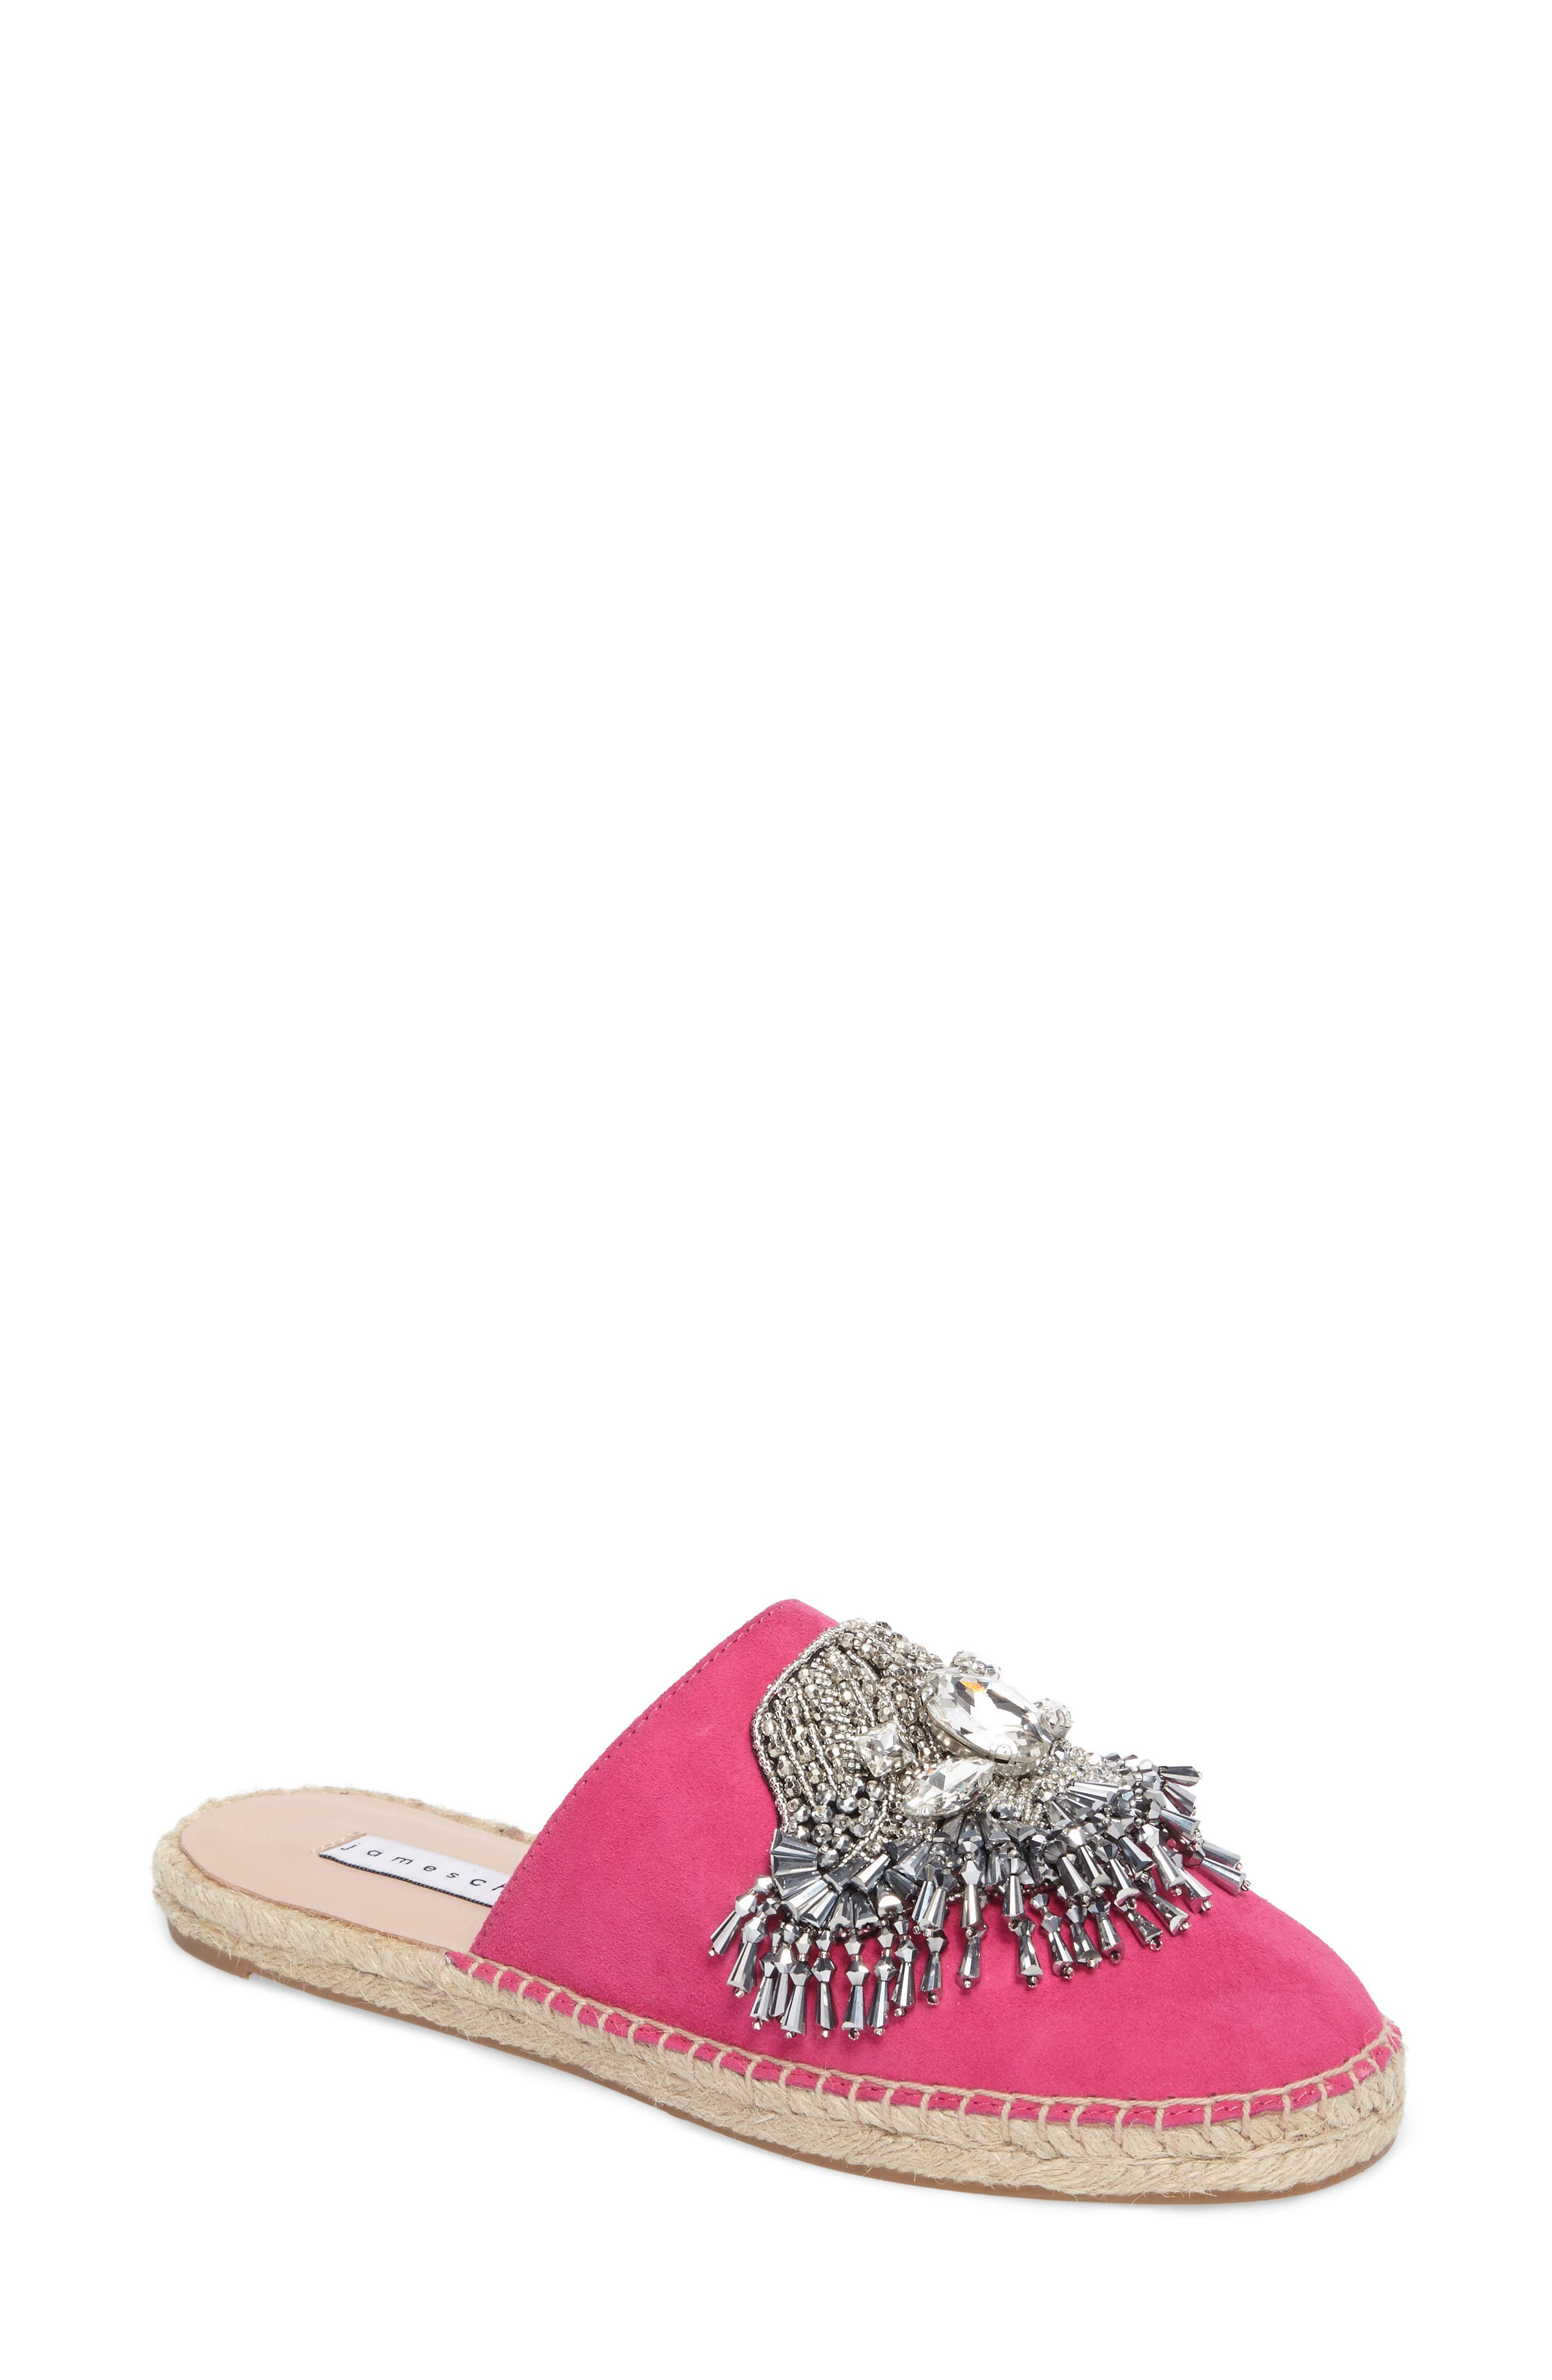 Main Image - James Chan Izalea Espadrille Mule (Women)